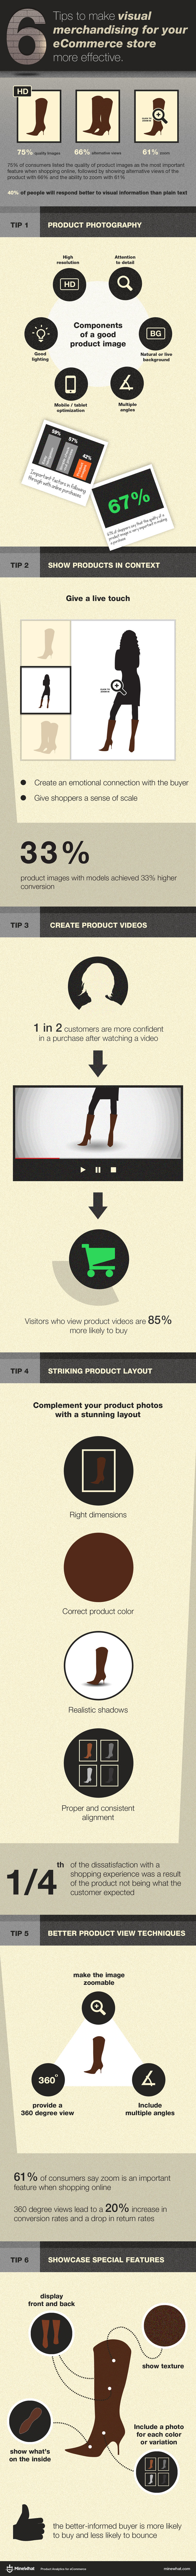 eCommerce: Visual Merchandising Tips